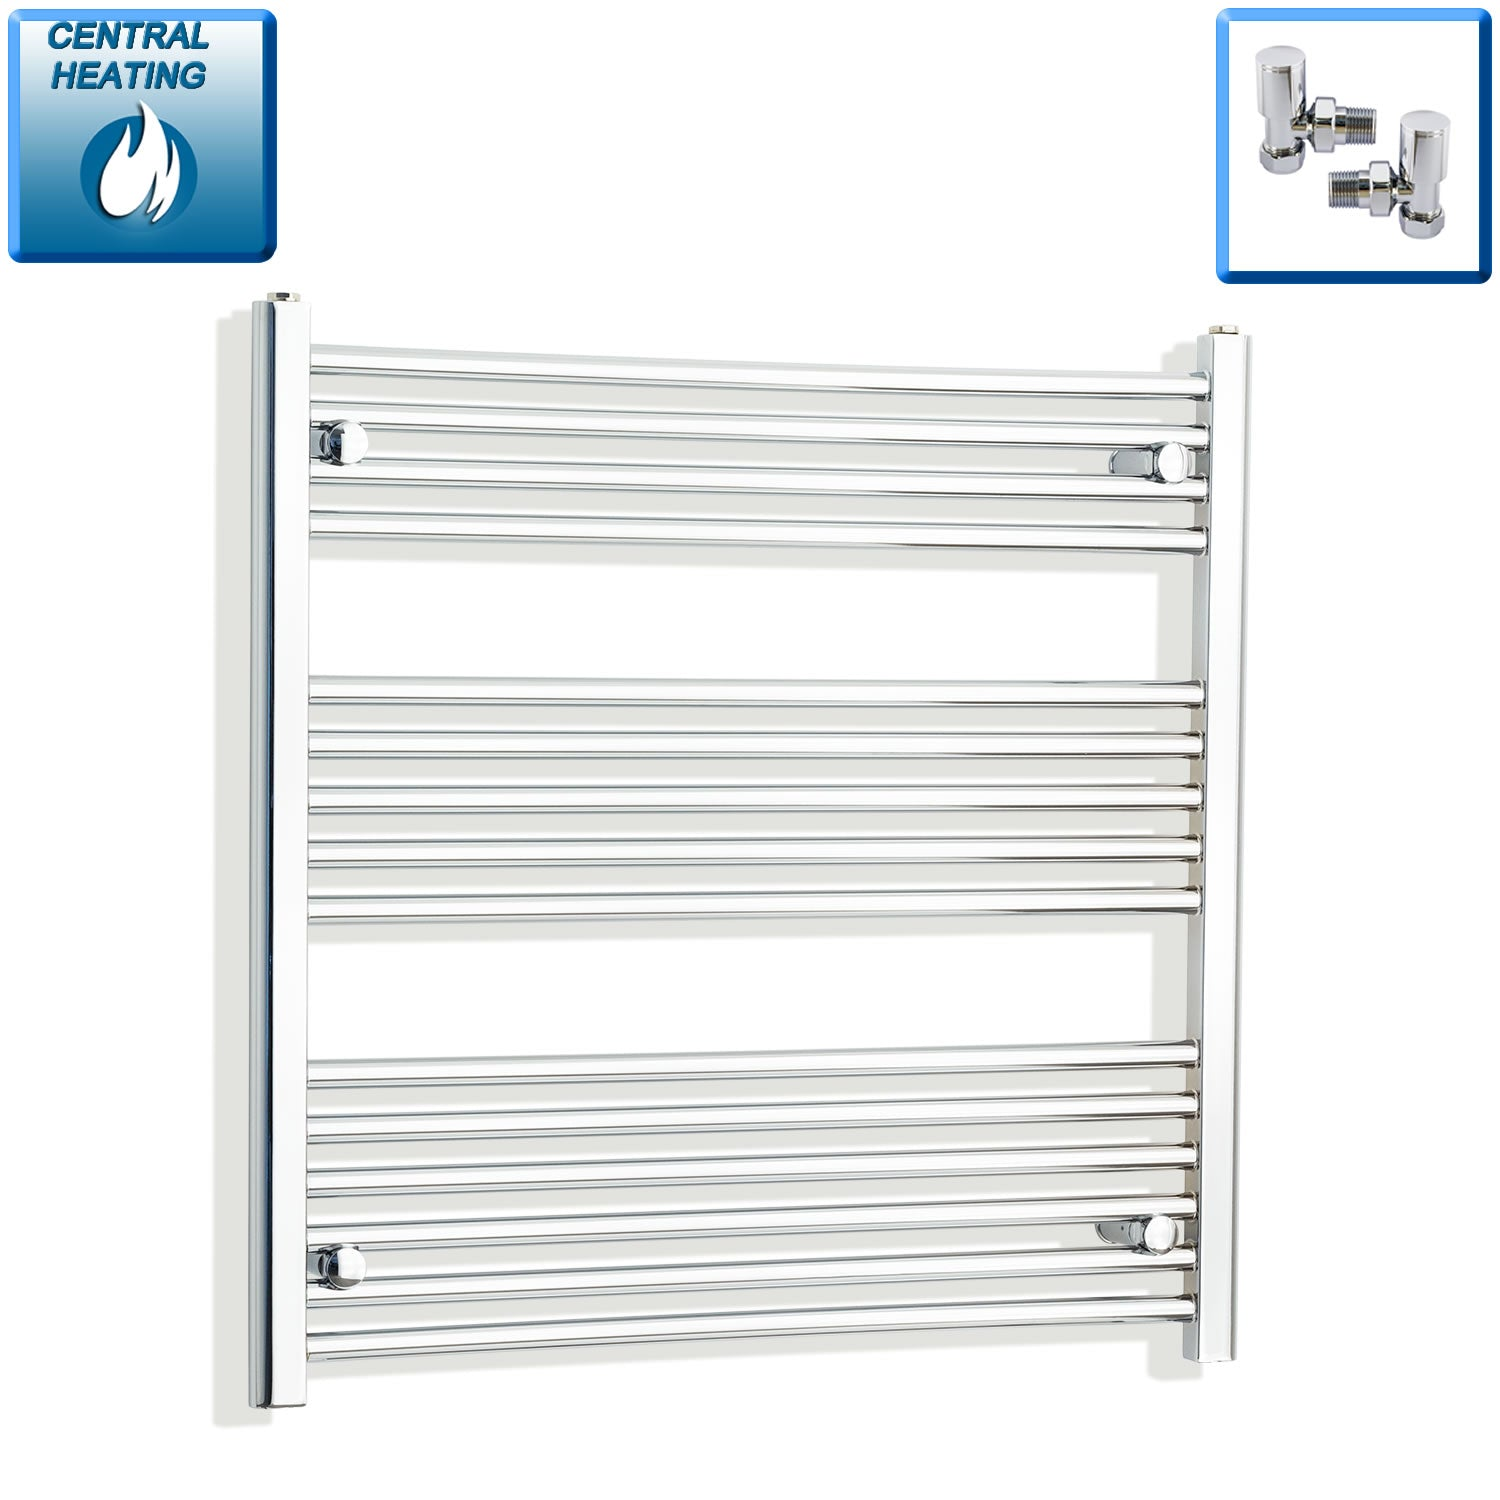 900mm Wide 800mm High Chrome Towel Rail Radiator With Angled Valve